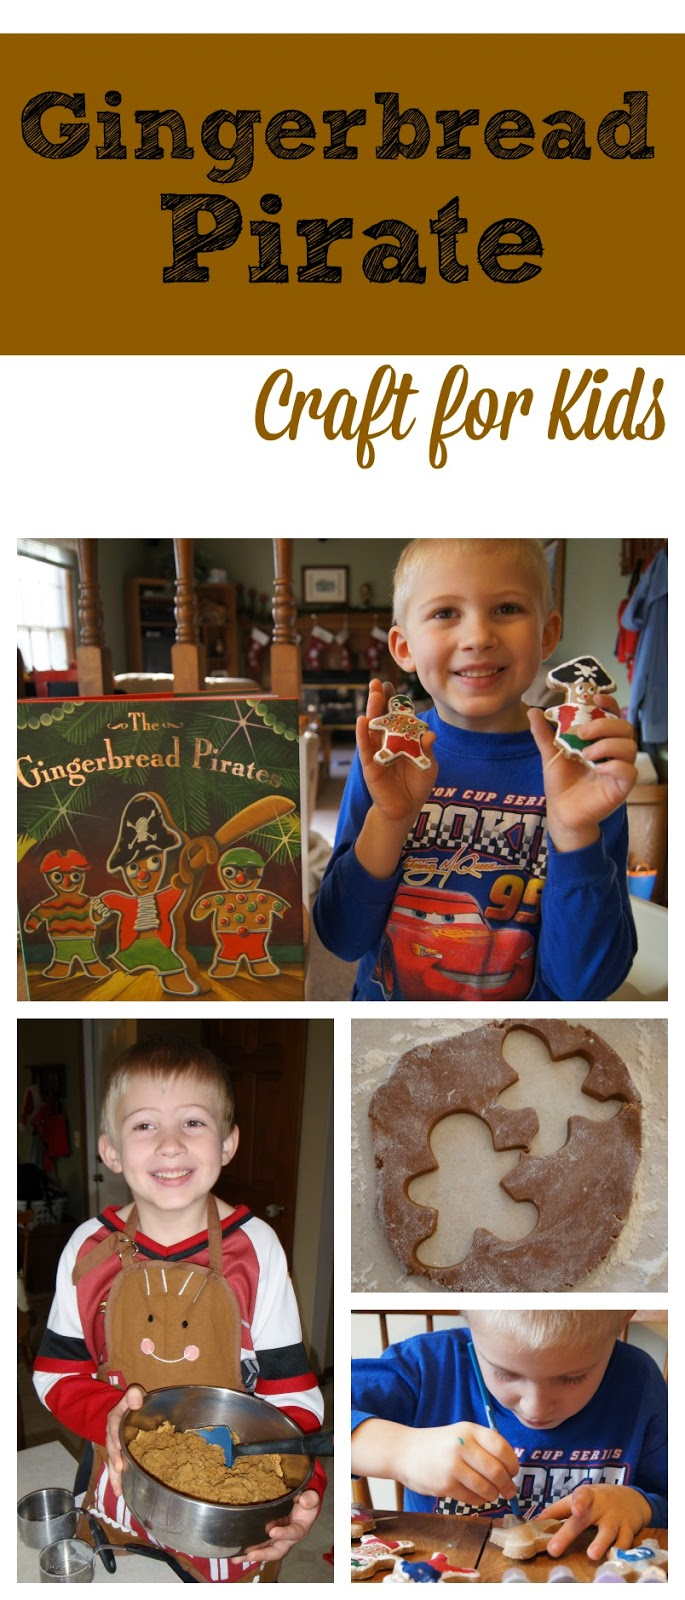 Gingerbread Pirates Craft for Kids is one of our favorite Christmas Crafts for kids - includes Cinnamon Ornament Dough Recipe